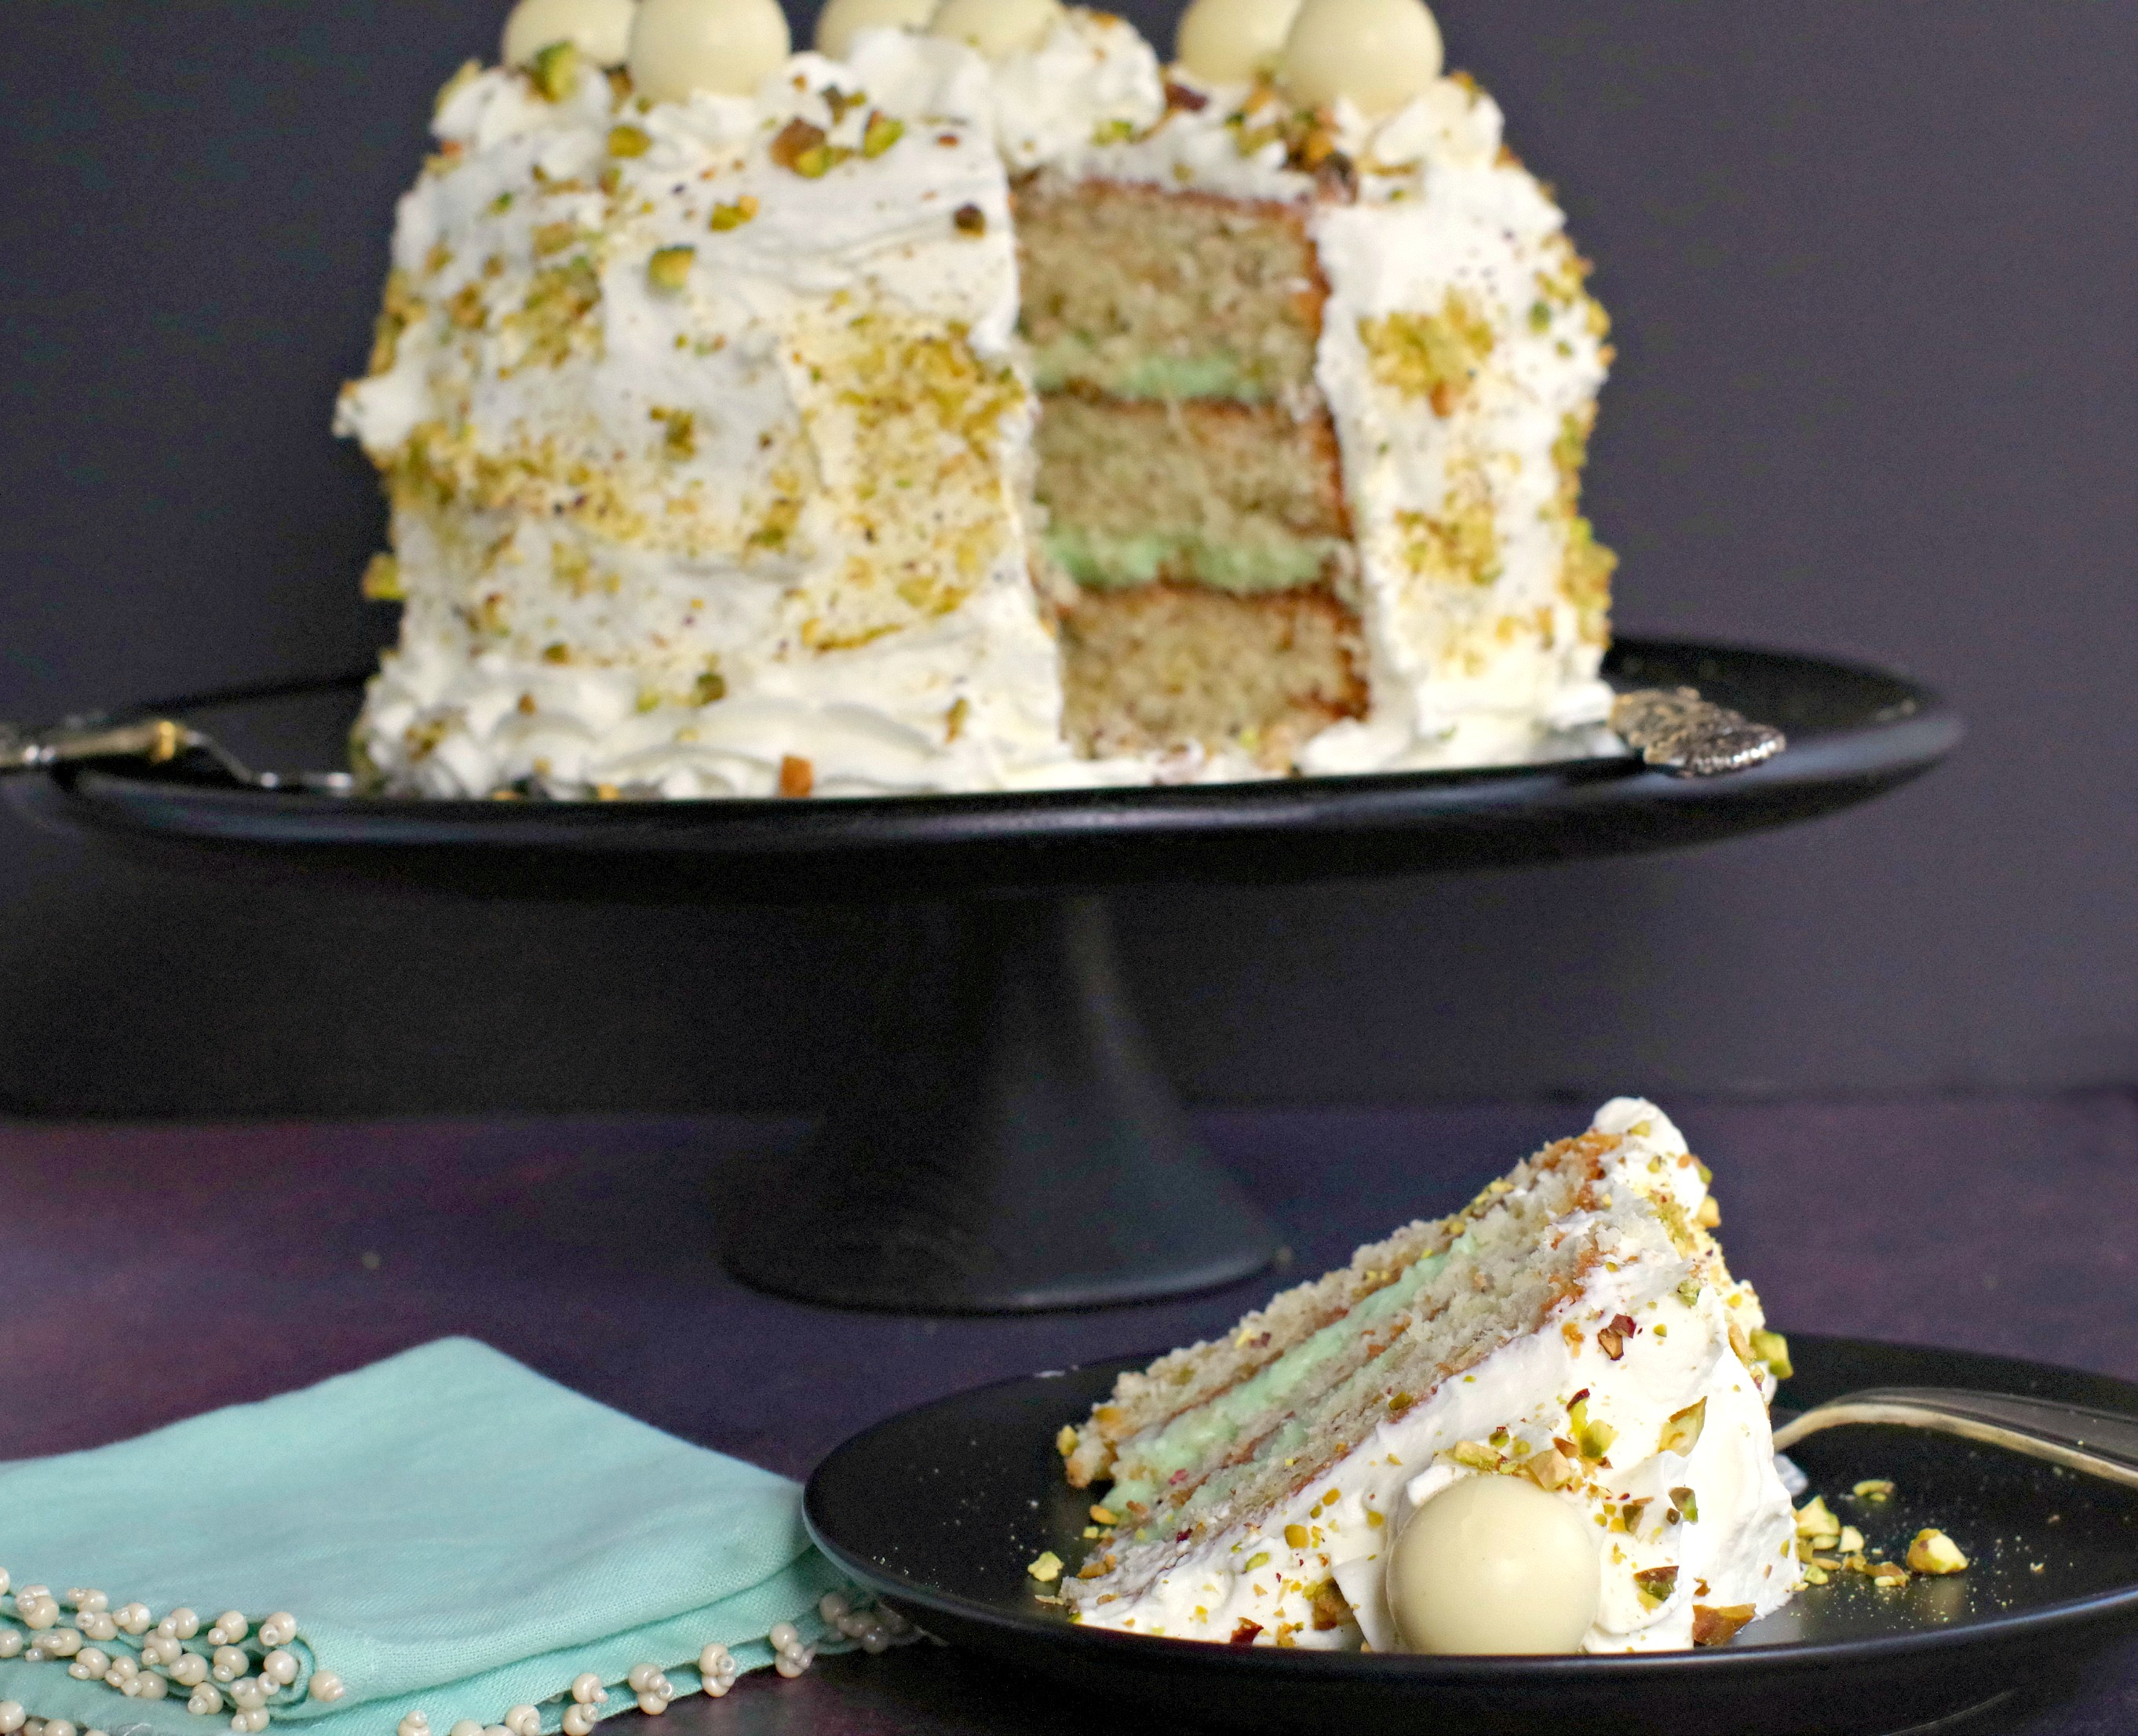 Pistachio White Chocolate Cake on black tray in background with piece of cake in the front